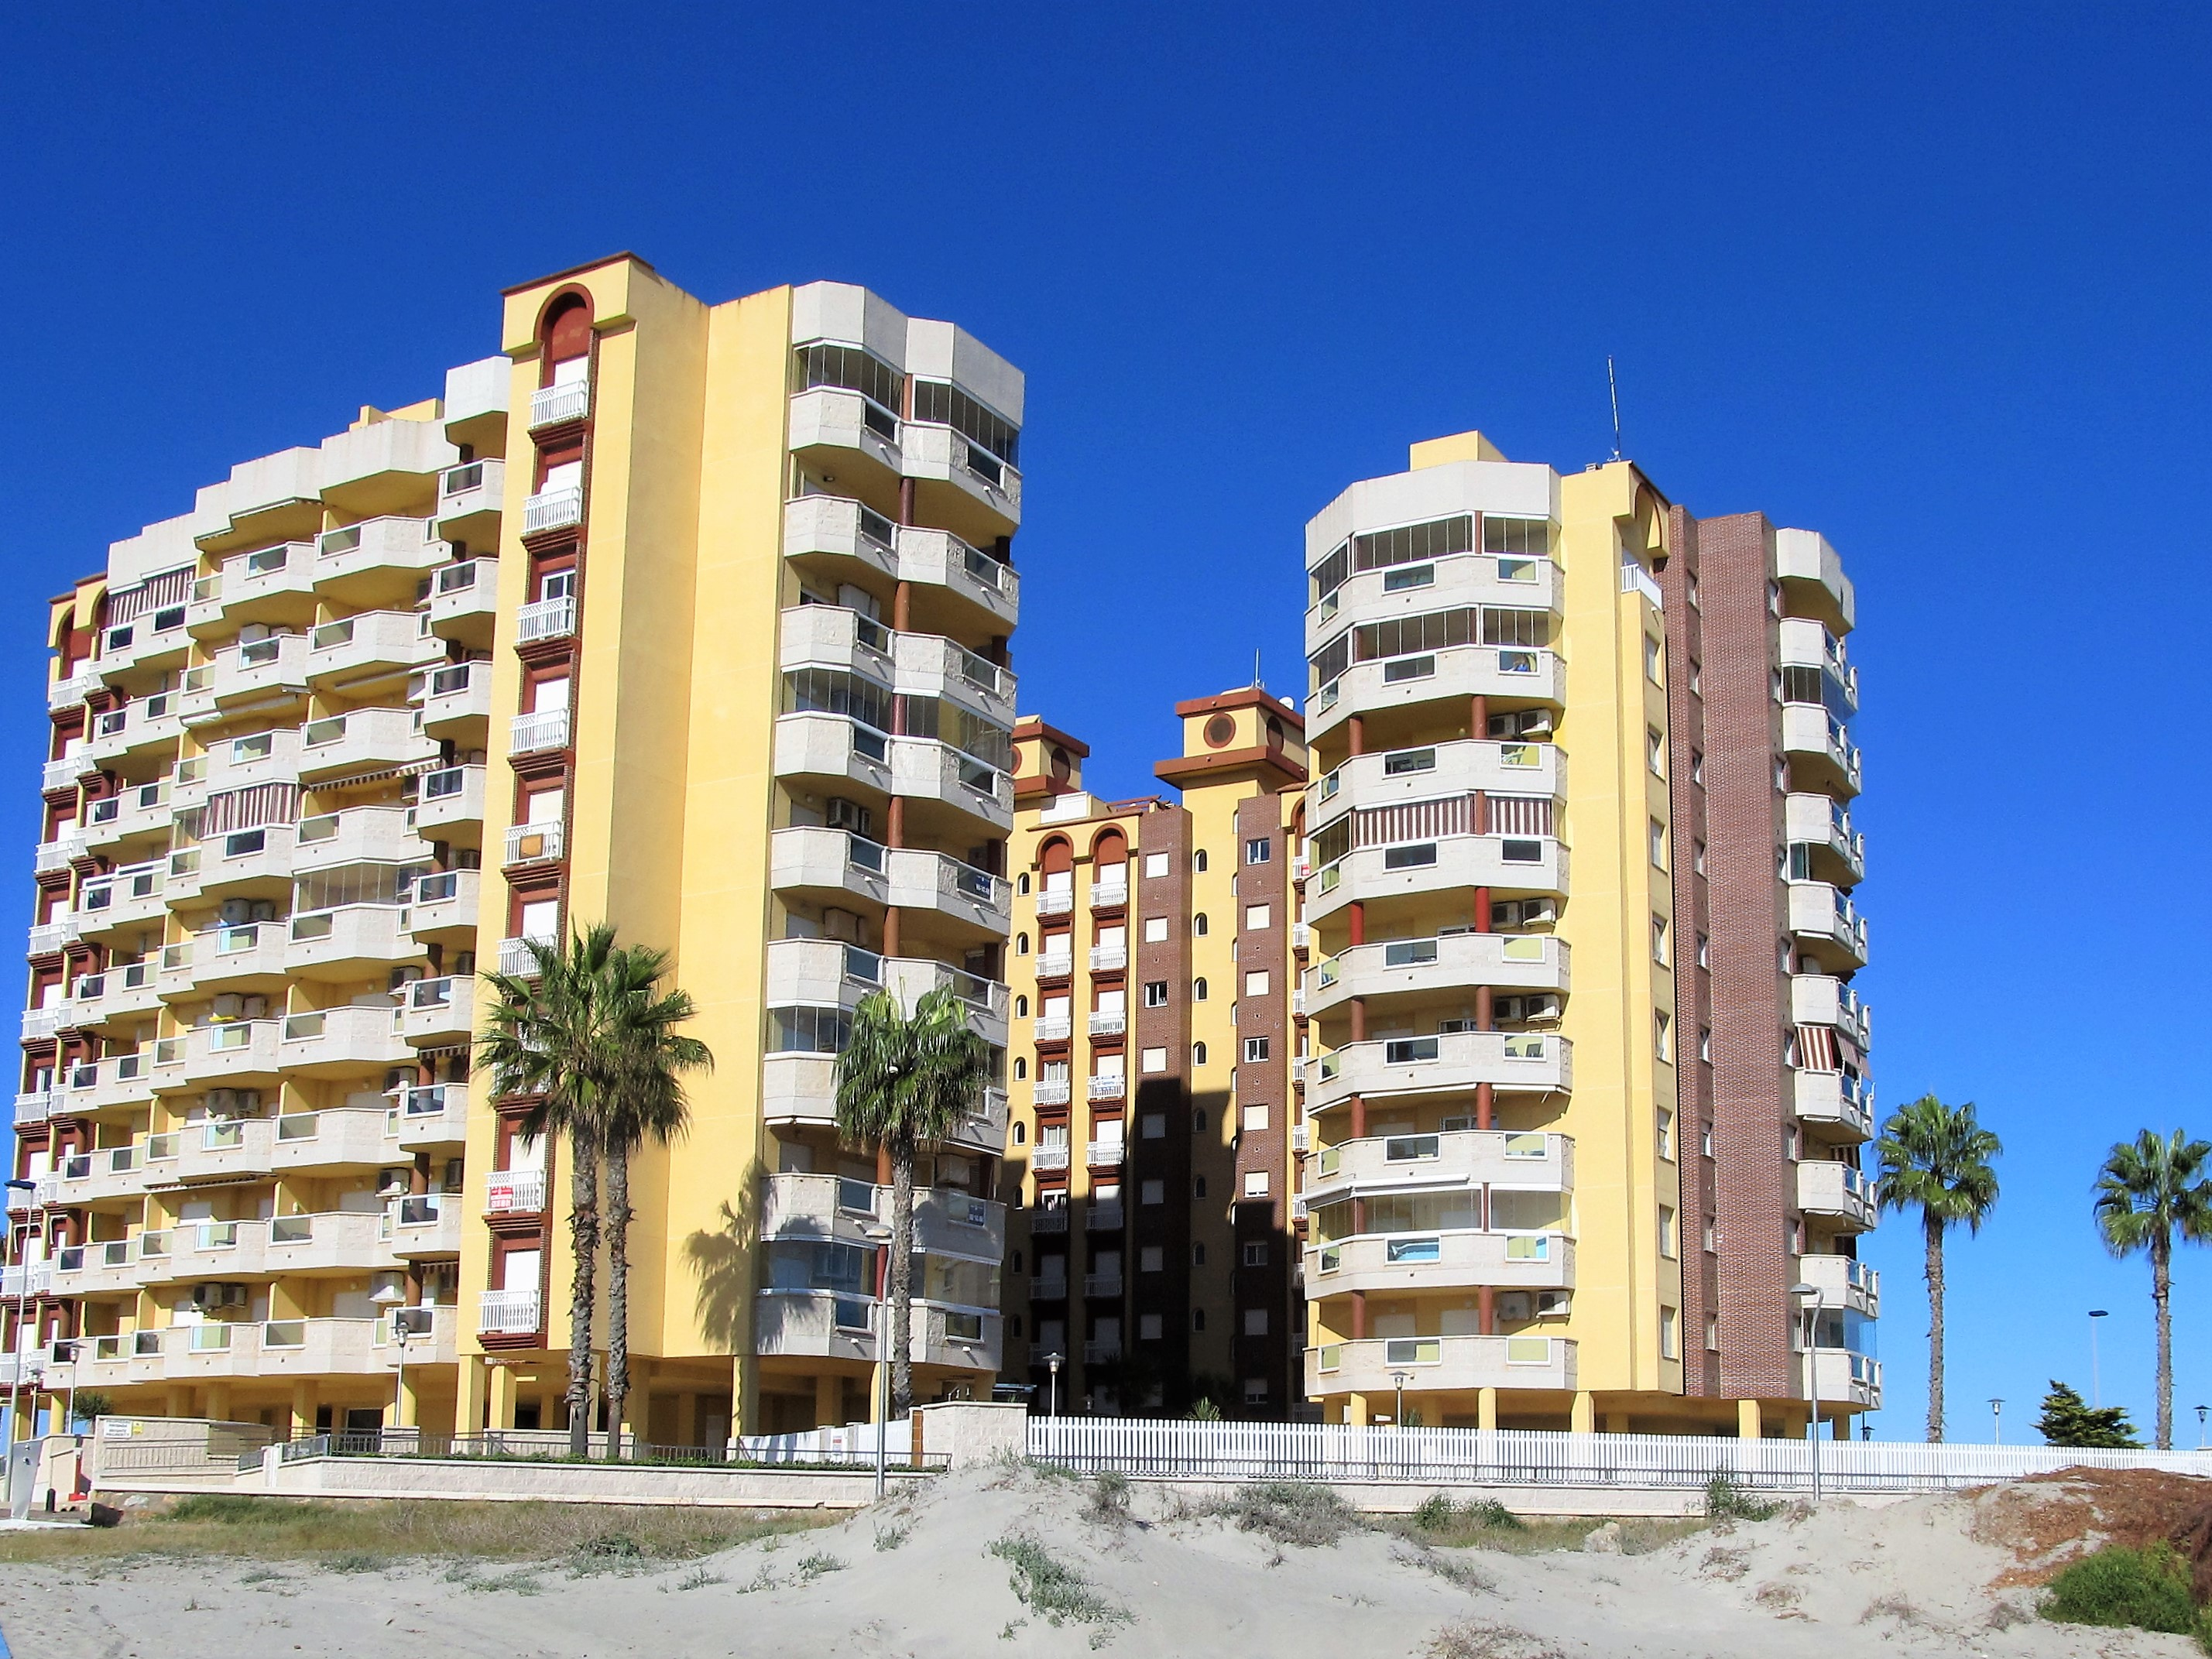 New two-bedroom apartments in Playa Principe